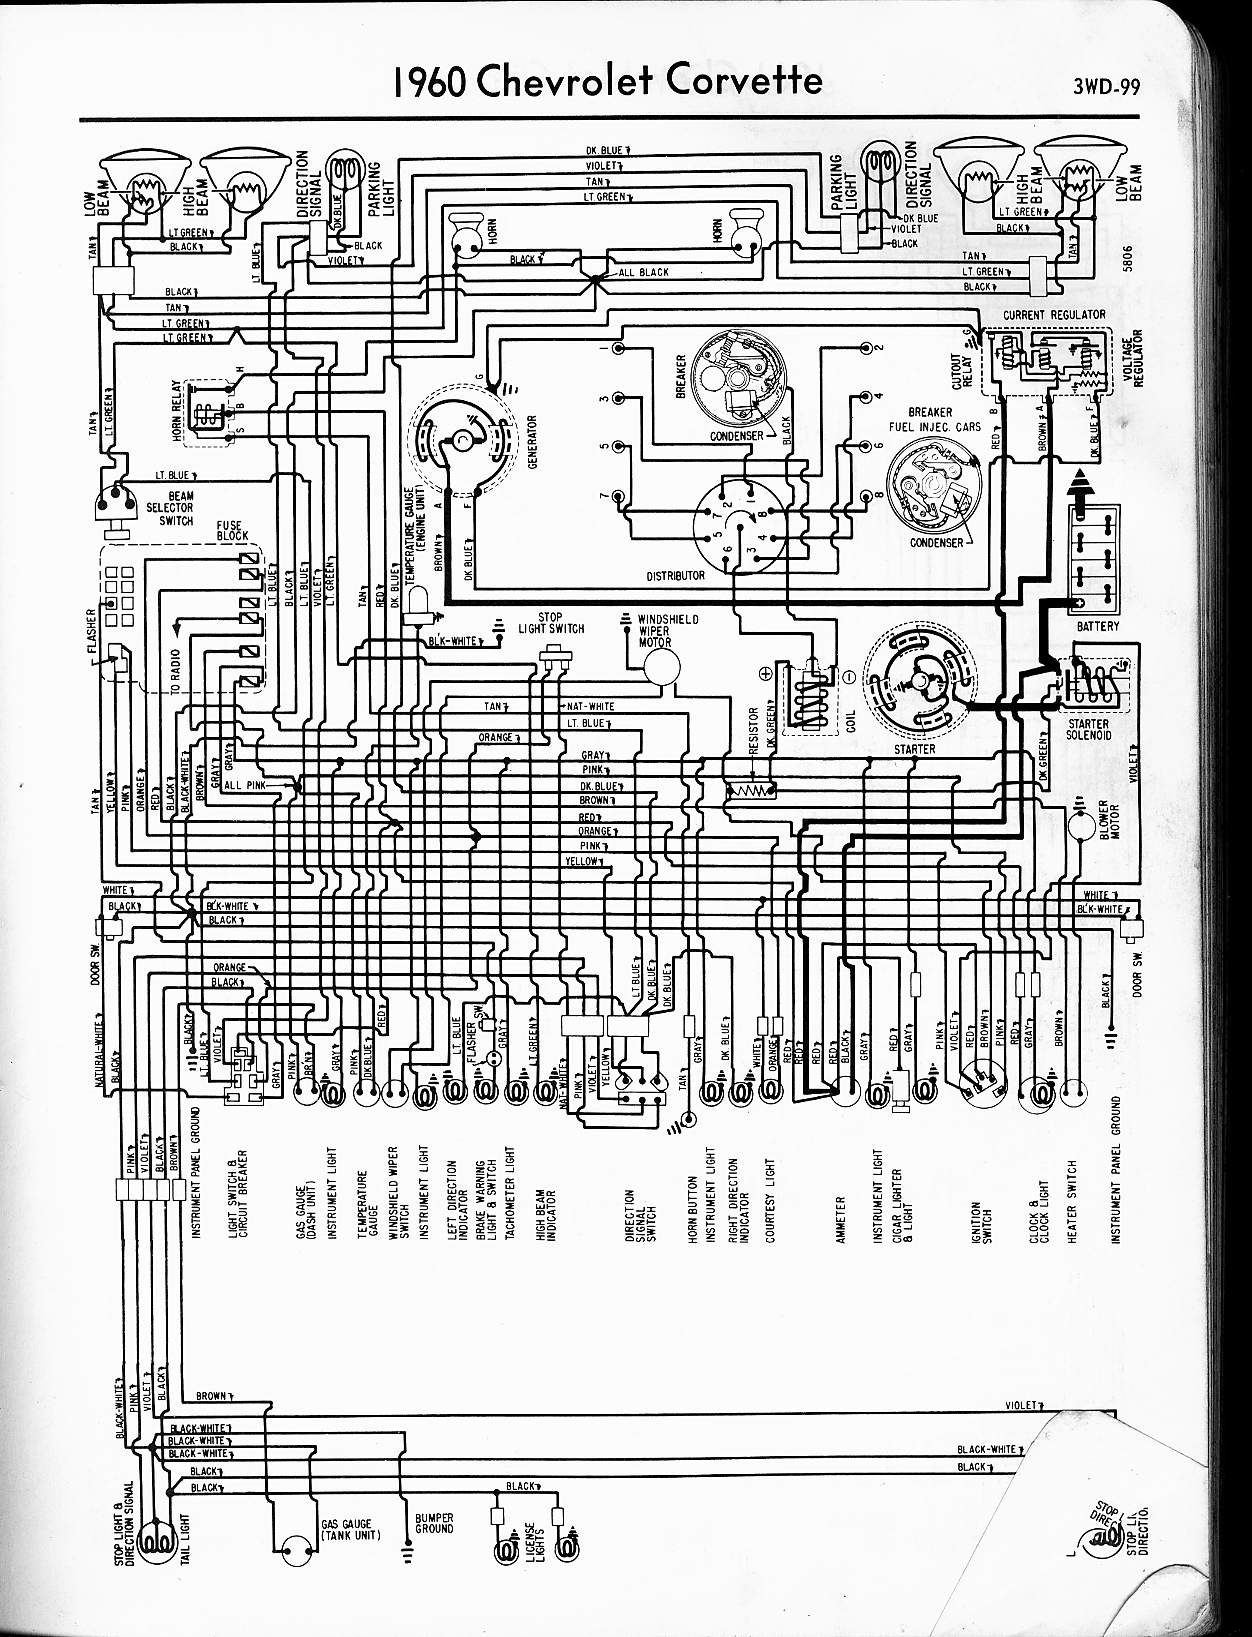 1982 chevrolet c10 wiring diagram rb25det s2 1960 library